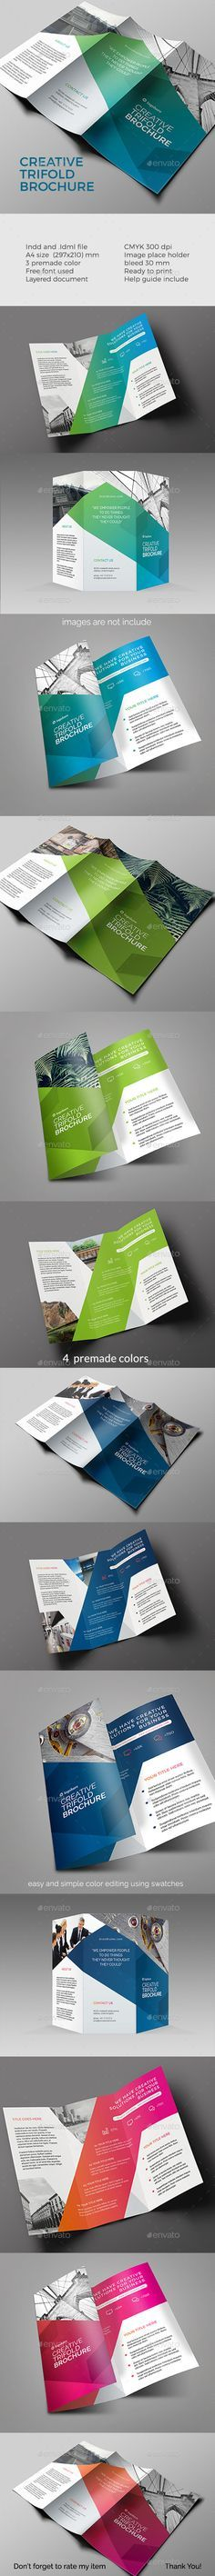 Trifold Brochure Template InDesign INDD. Download here: http://graphicriver.net/item/trifold-brochure/15521511?ref=ksioks